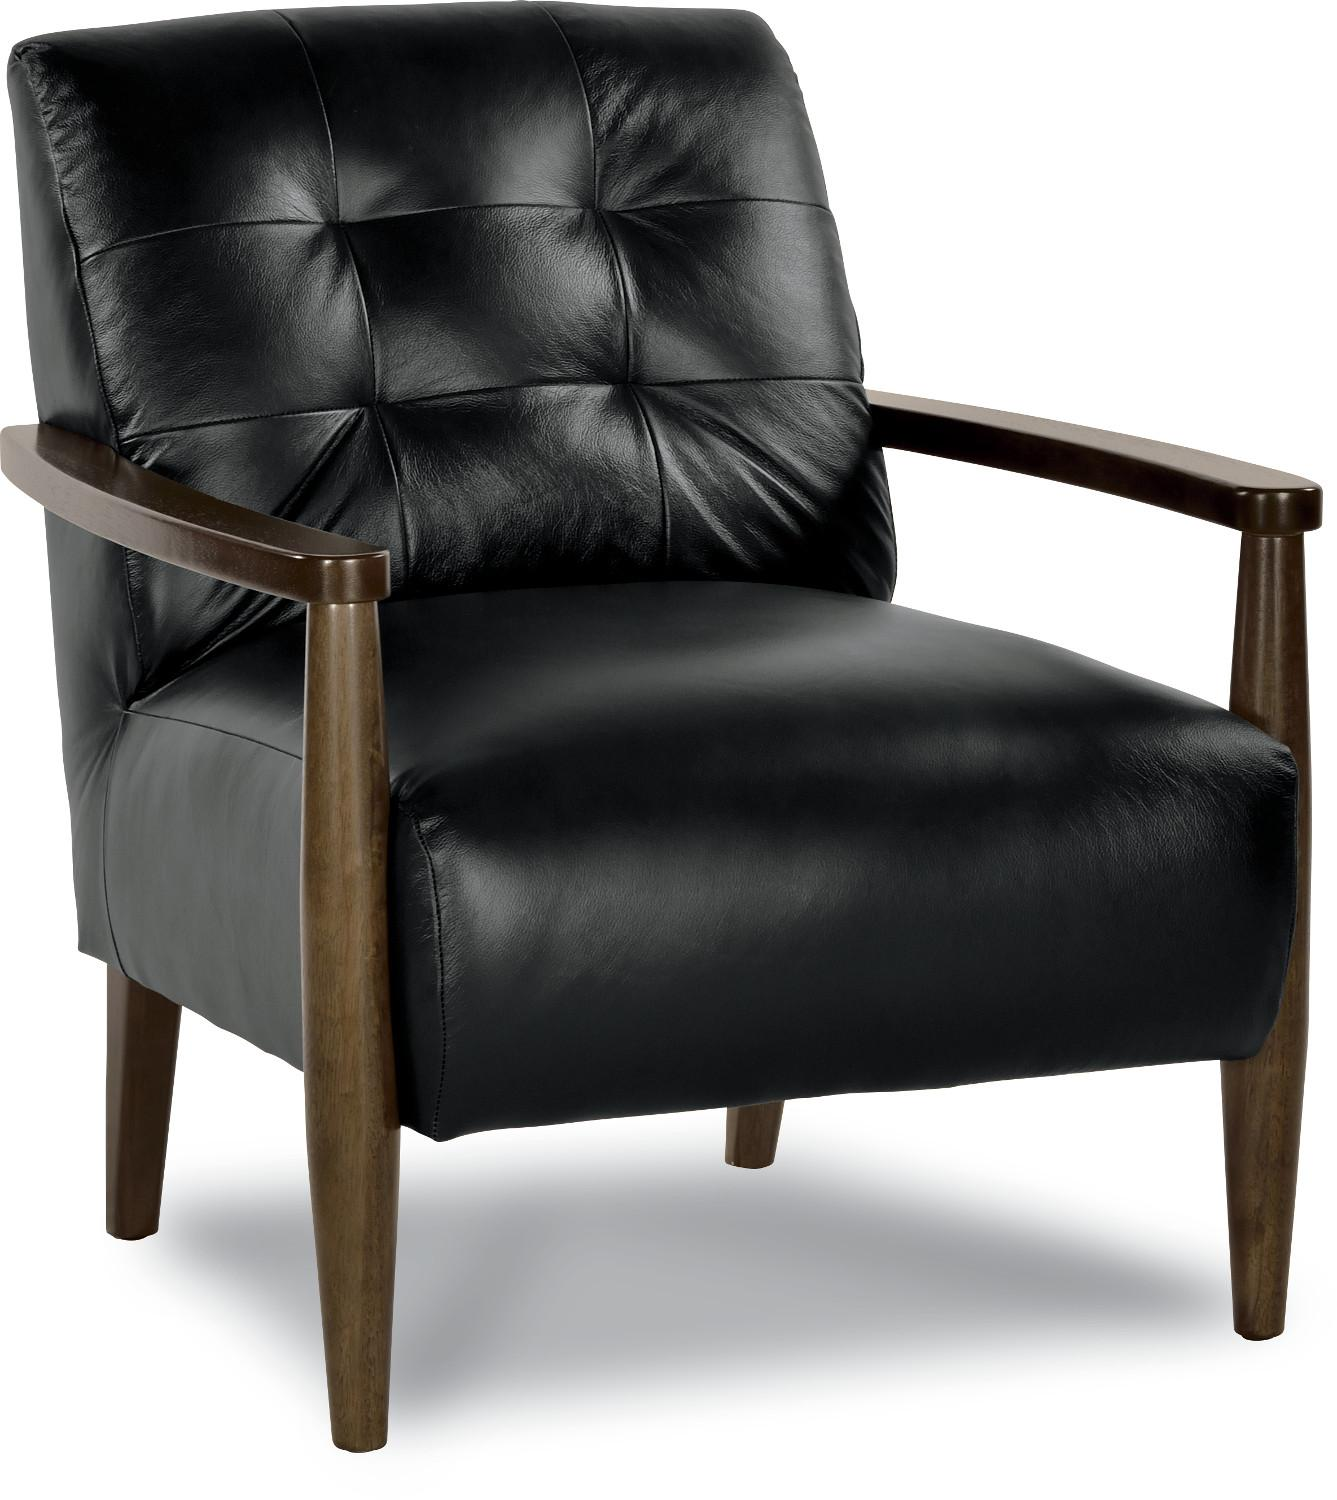 stiletto mid century modern chair with exposed wood arms by la z boy wolf and gardiner wolf. Black Bedroom Furniture Sets. Home Design Ideas